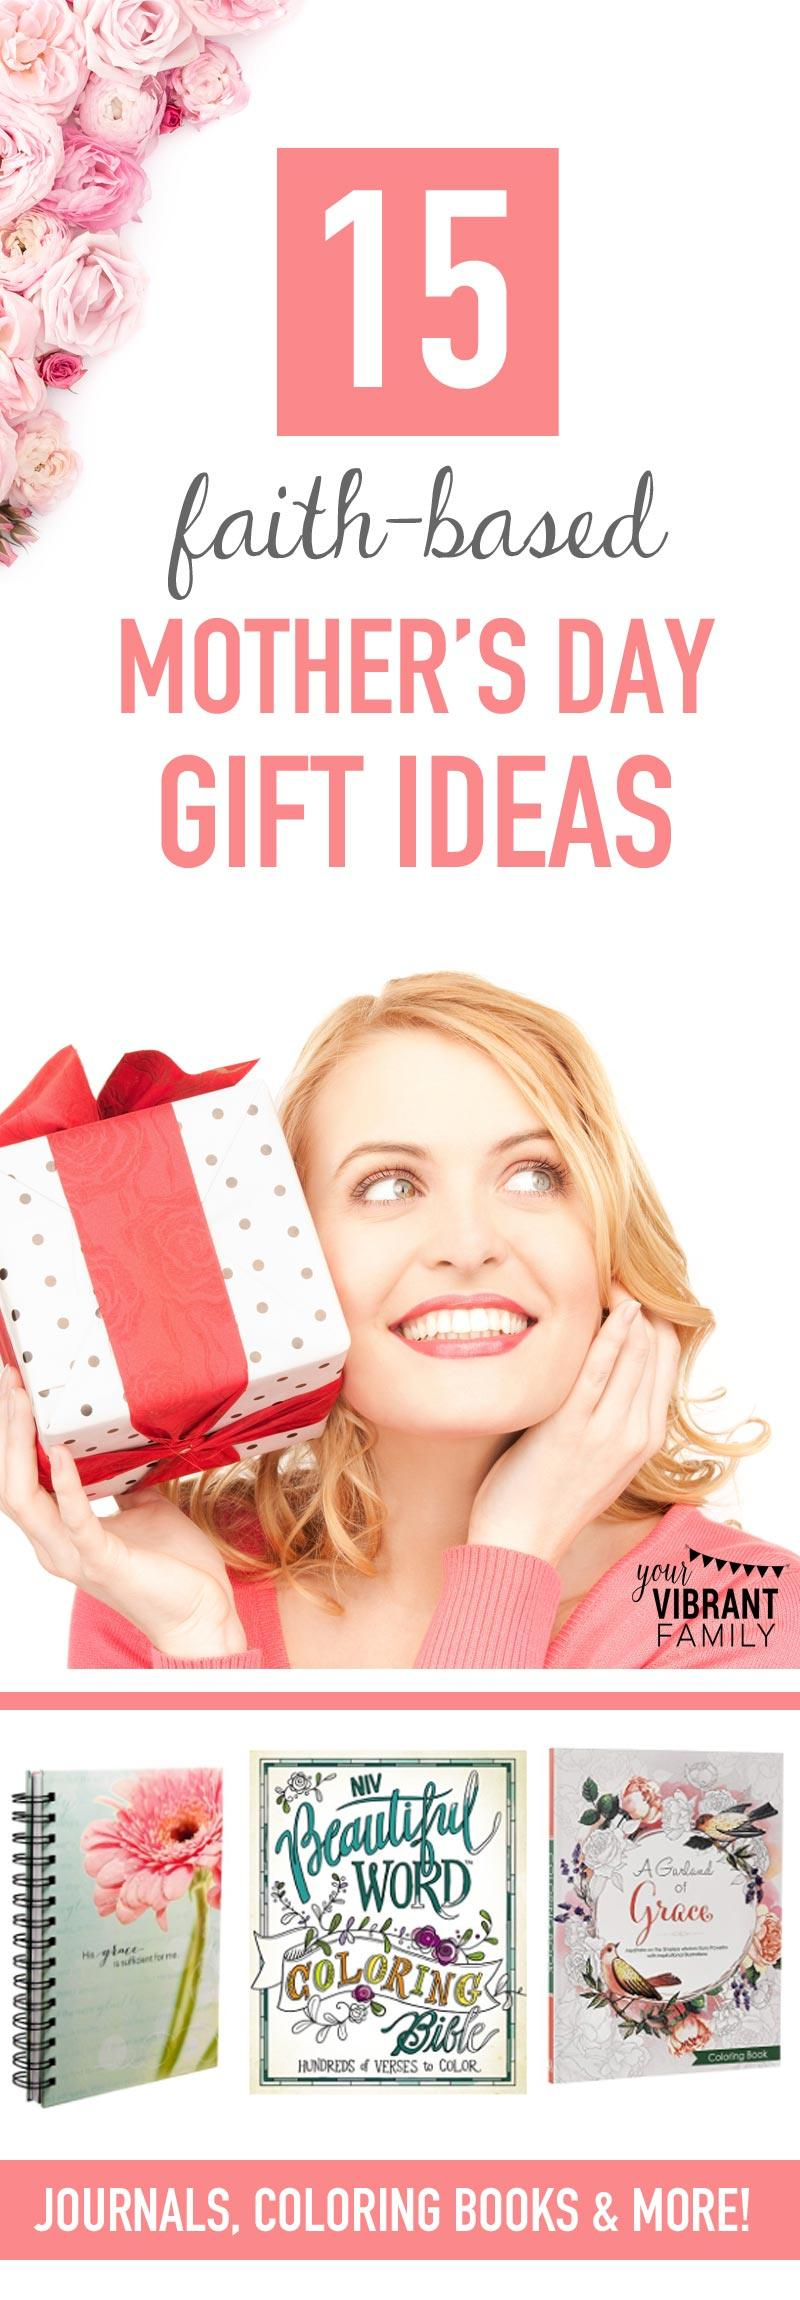 Need a Mother's Day gift or birthday gift for your mom (or a friend)? These 15 gift ideas will inspire her faith and continually bless her year-round! These are the kind of birthday or Mothers Day gifts I'd like to receive!